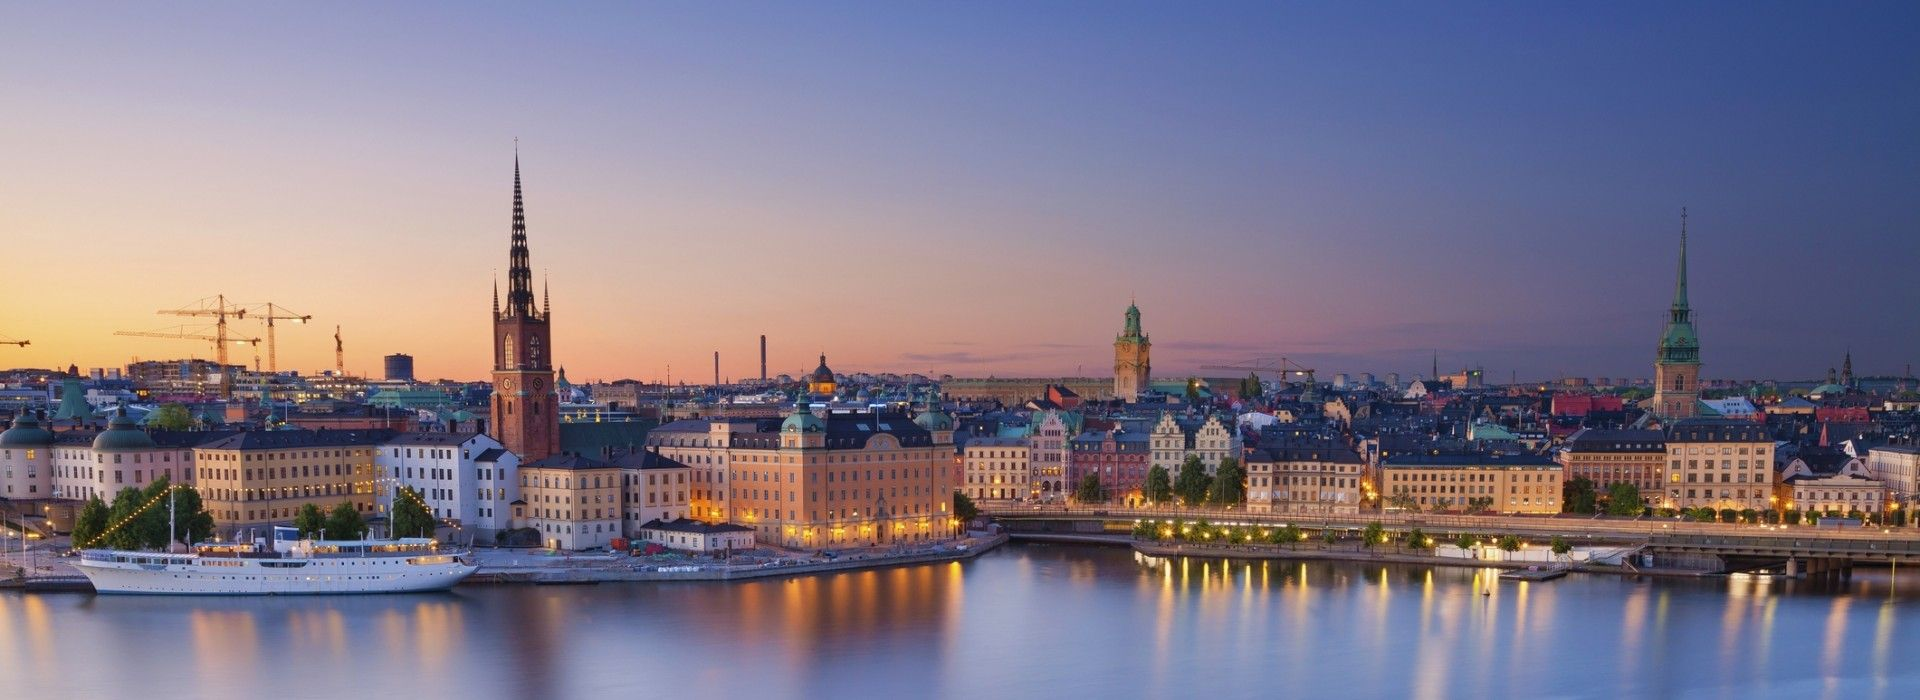 Sweden Tours and Trips to Sweden